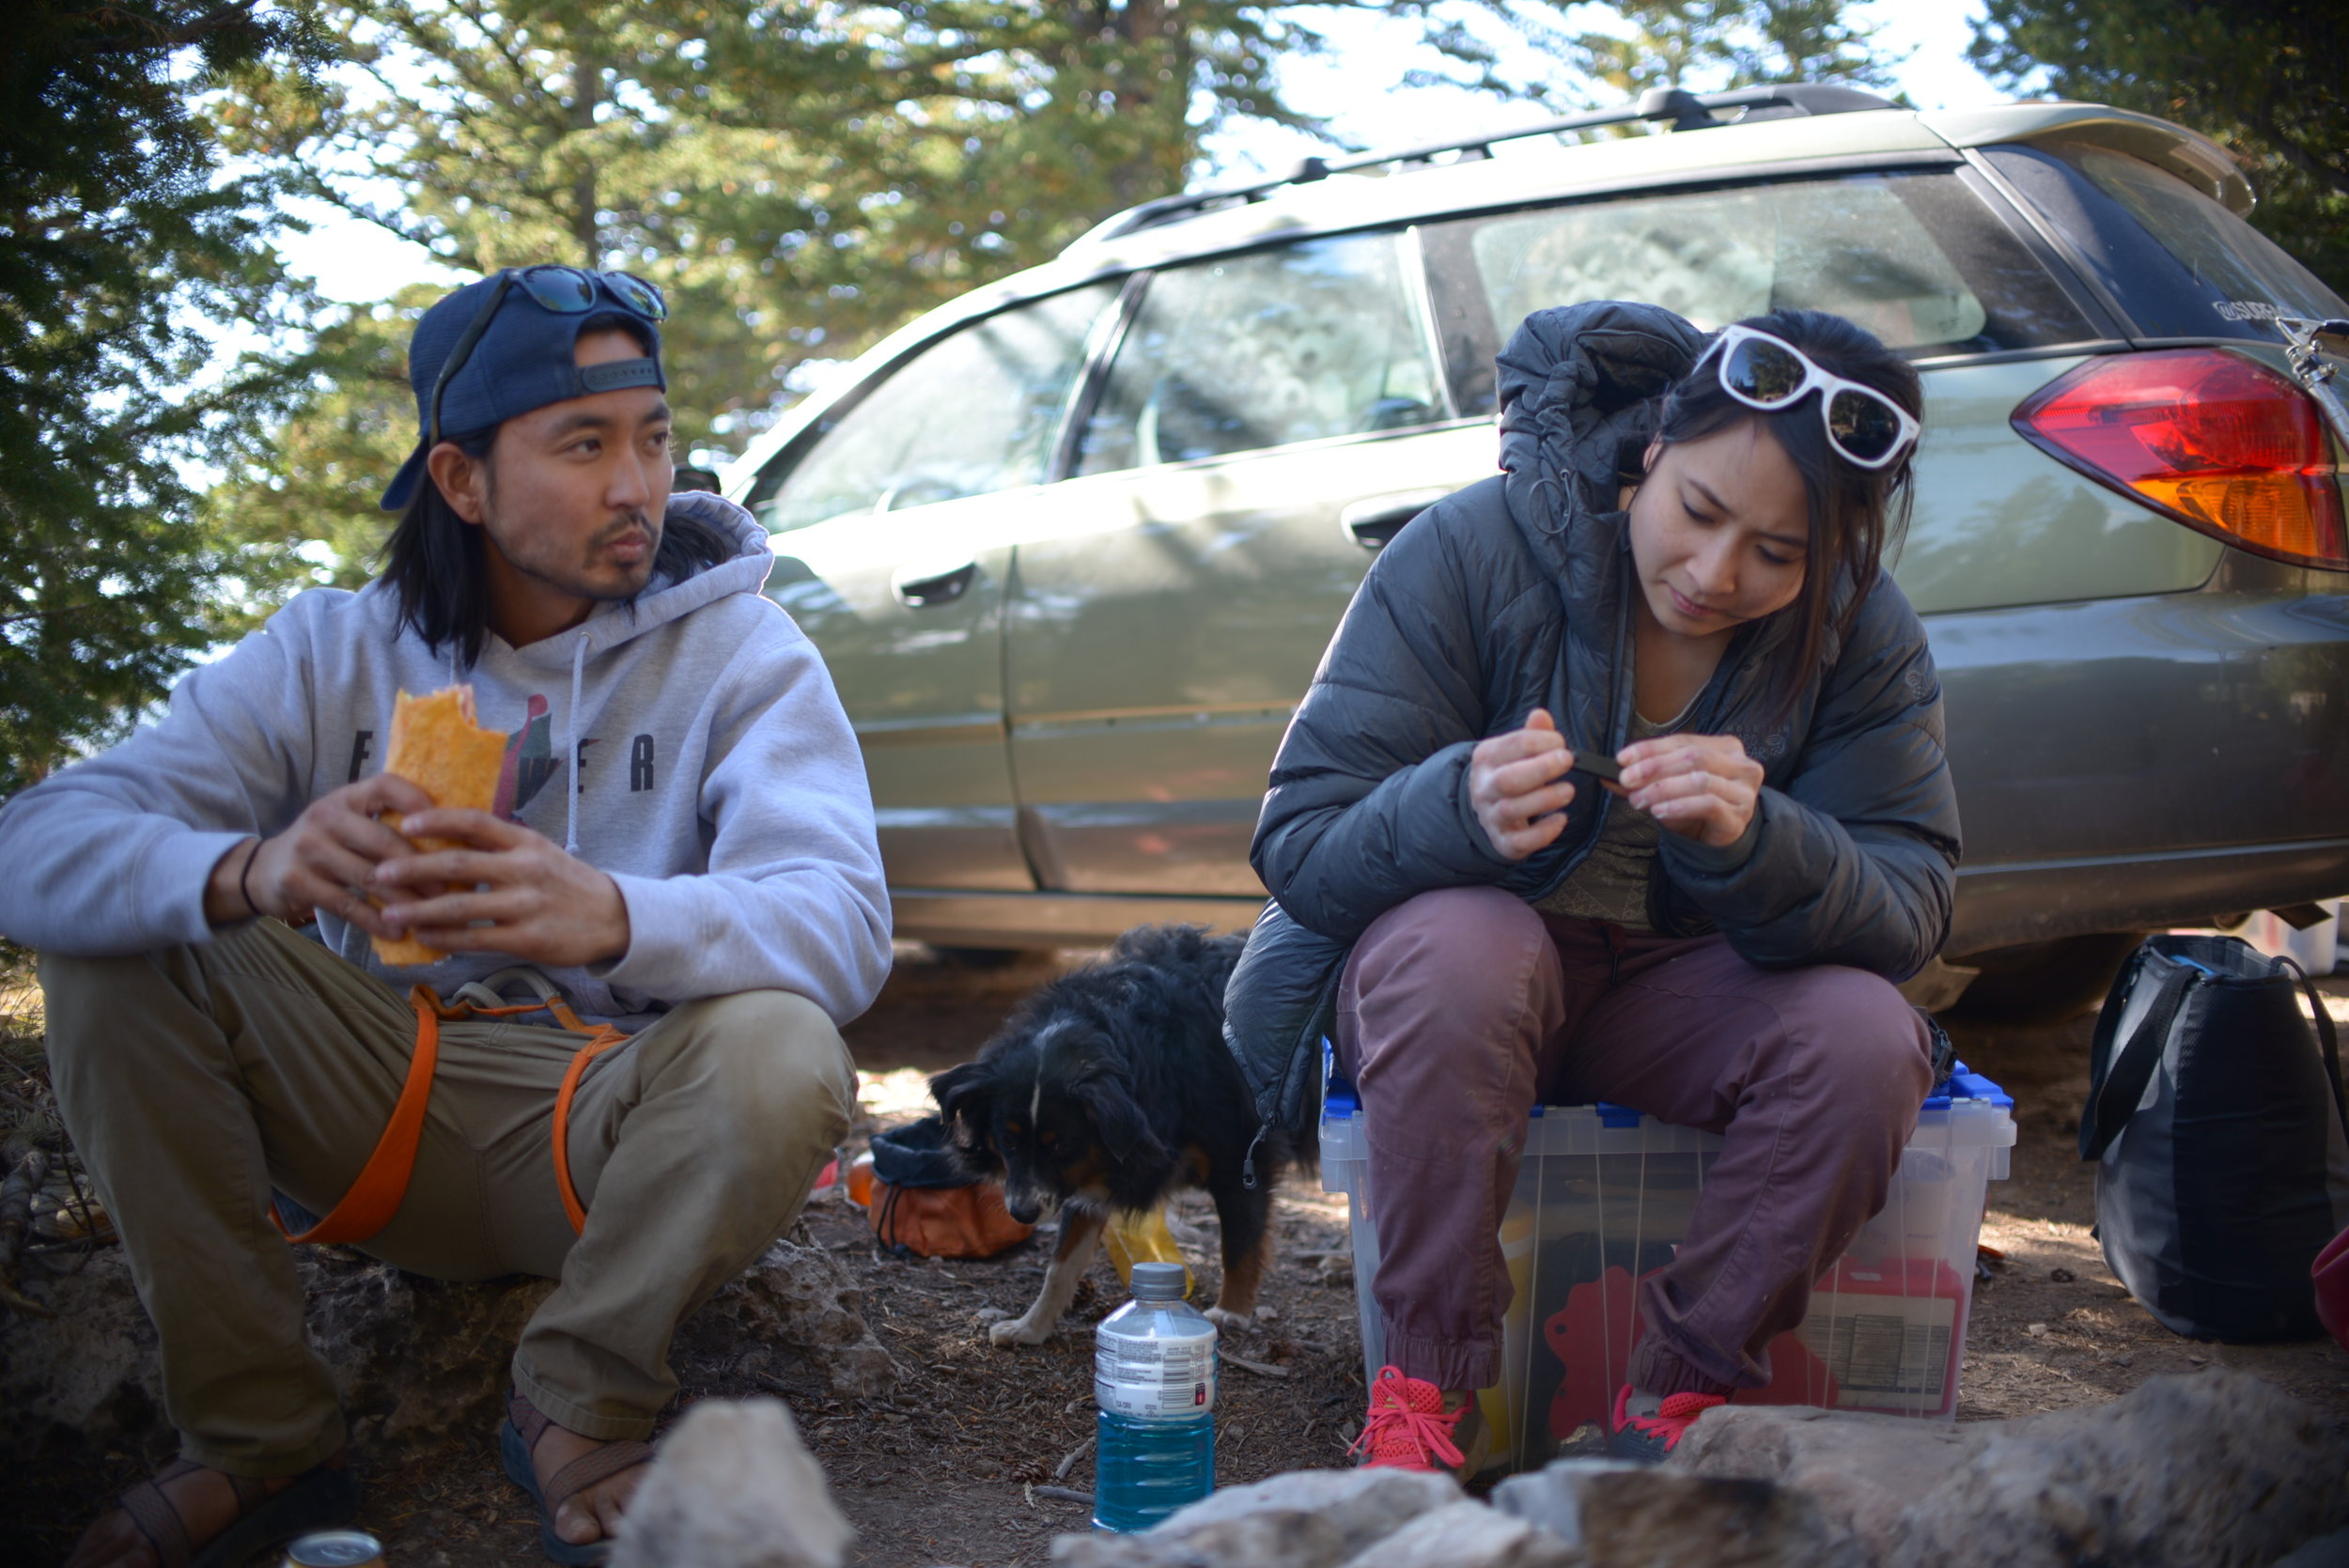 Replenish energy and clipping nails are essential for climbers.